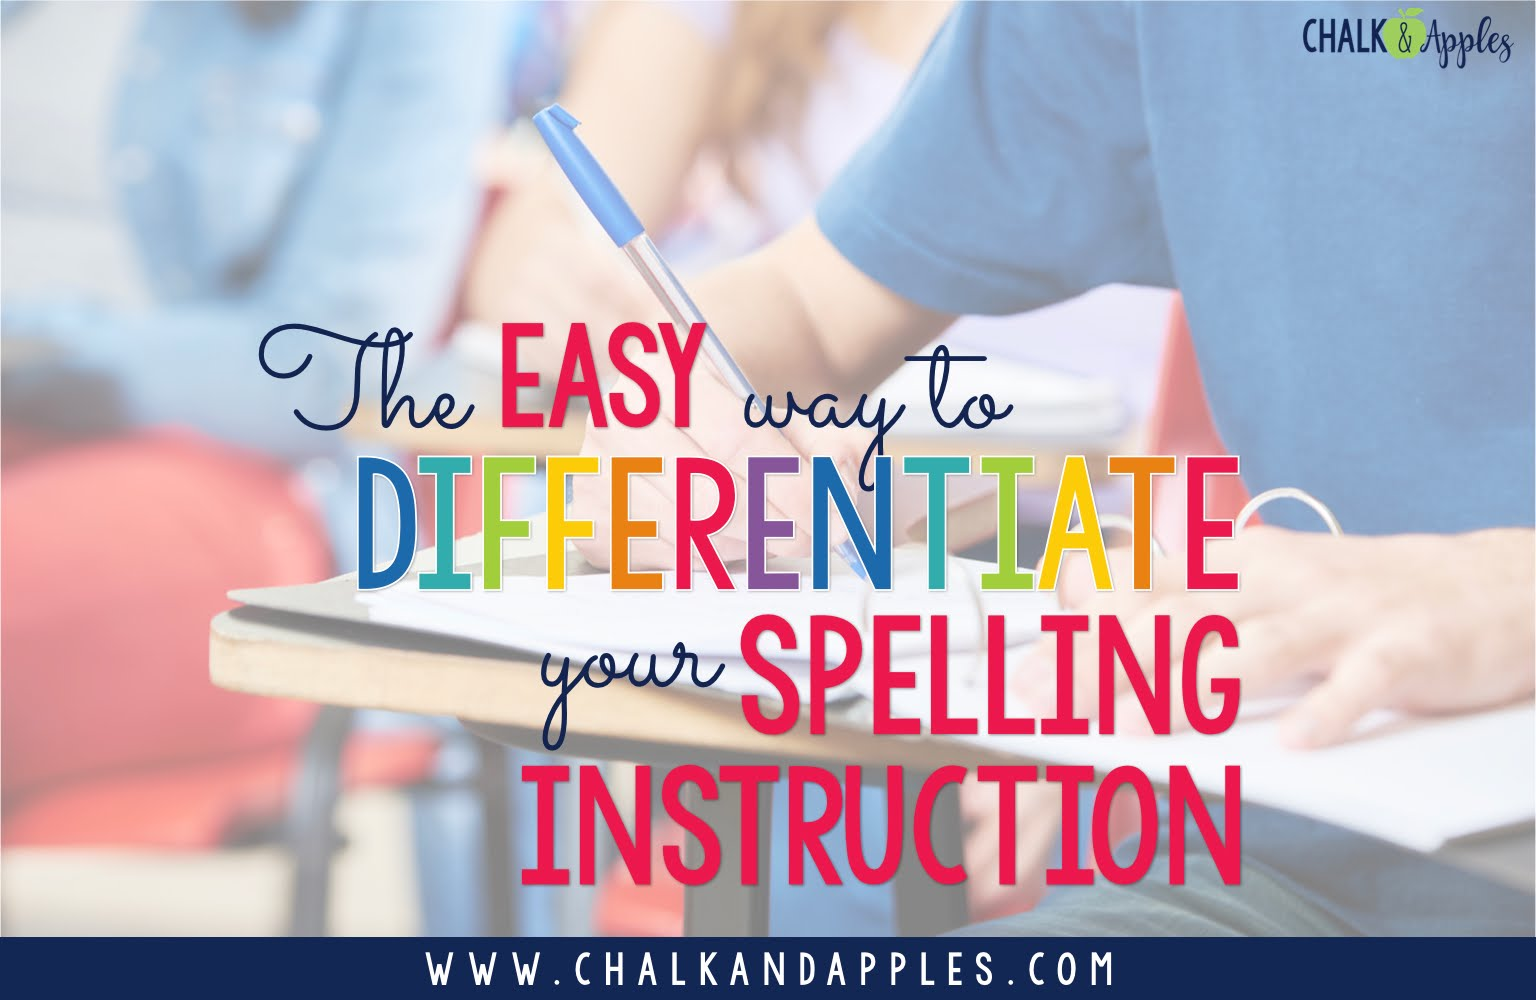 Quickly & easily differentiate your spelling instruction using the resources you already have!